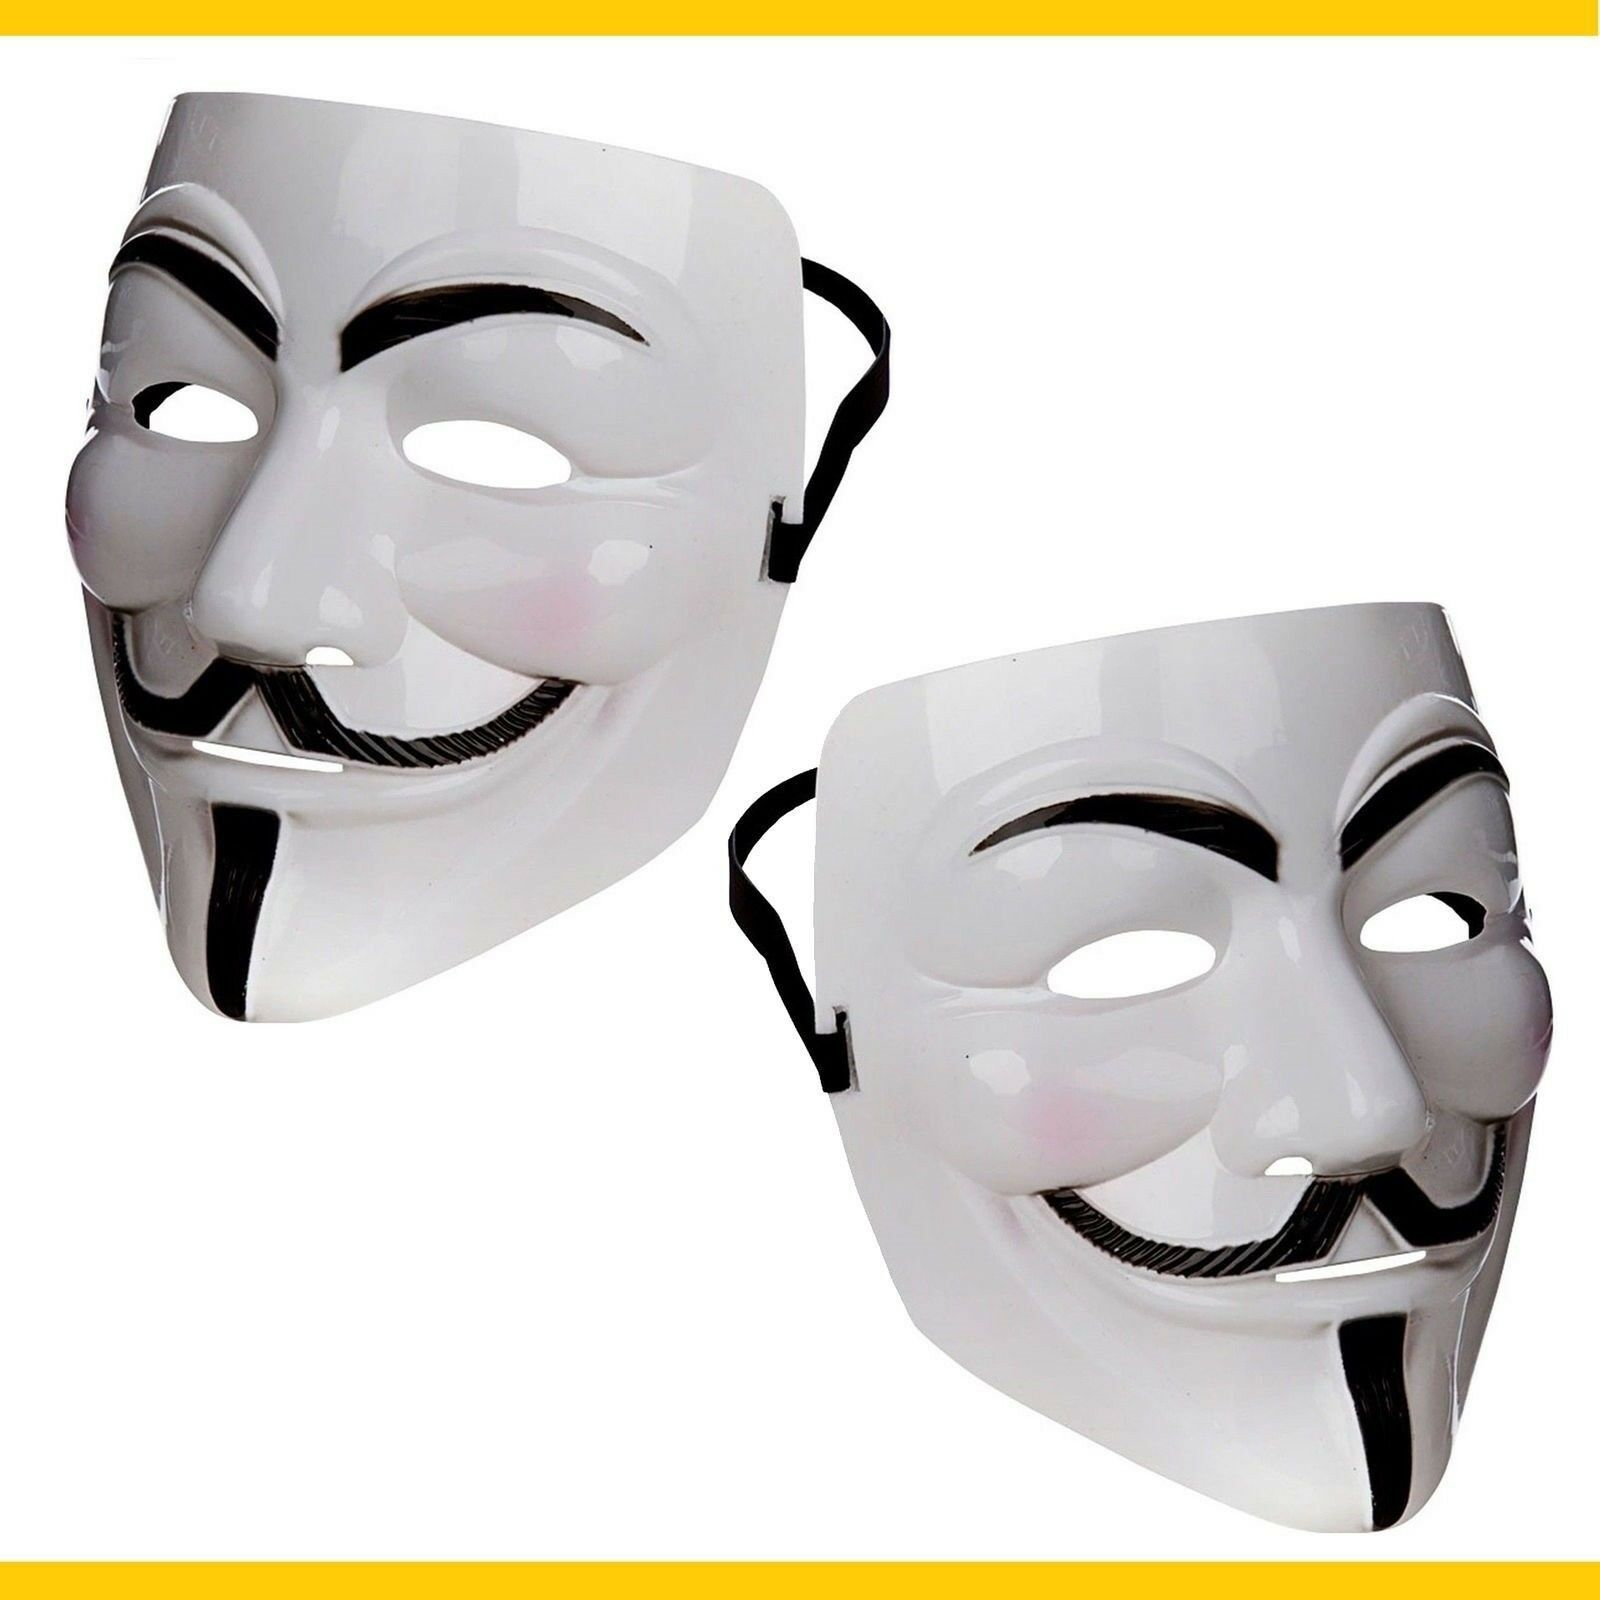 Details about Official Anonymous Hacker Protest V For Vendetta Movie Guy  Fawkes Mask Two Pack!